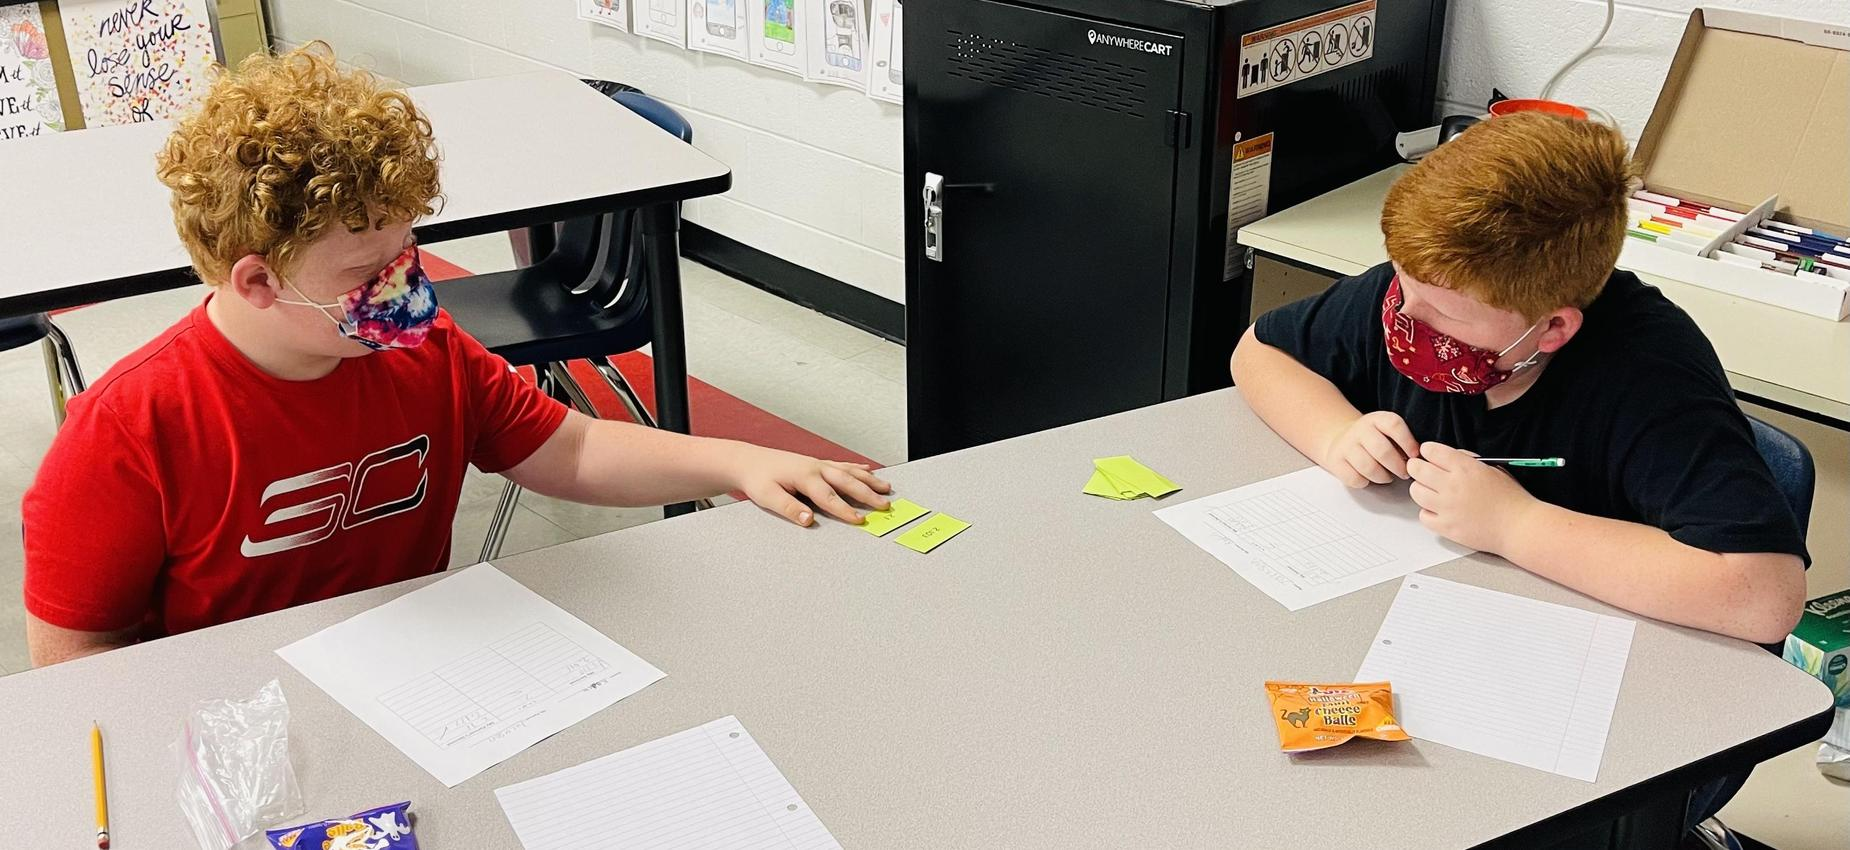 Two students work on math in a classroom.